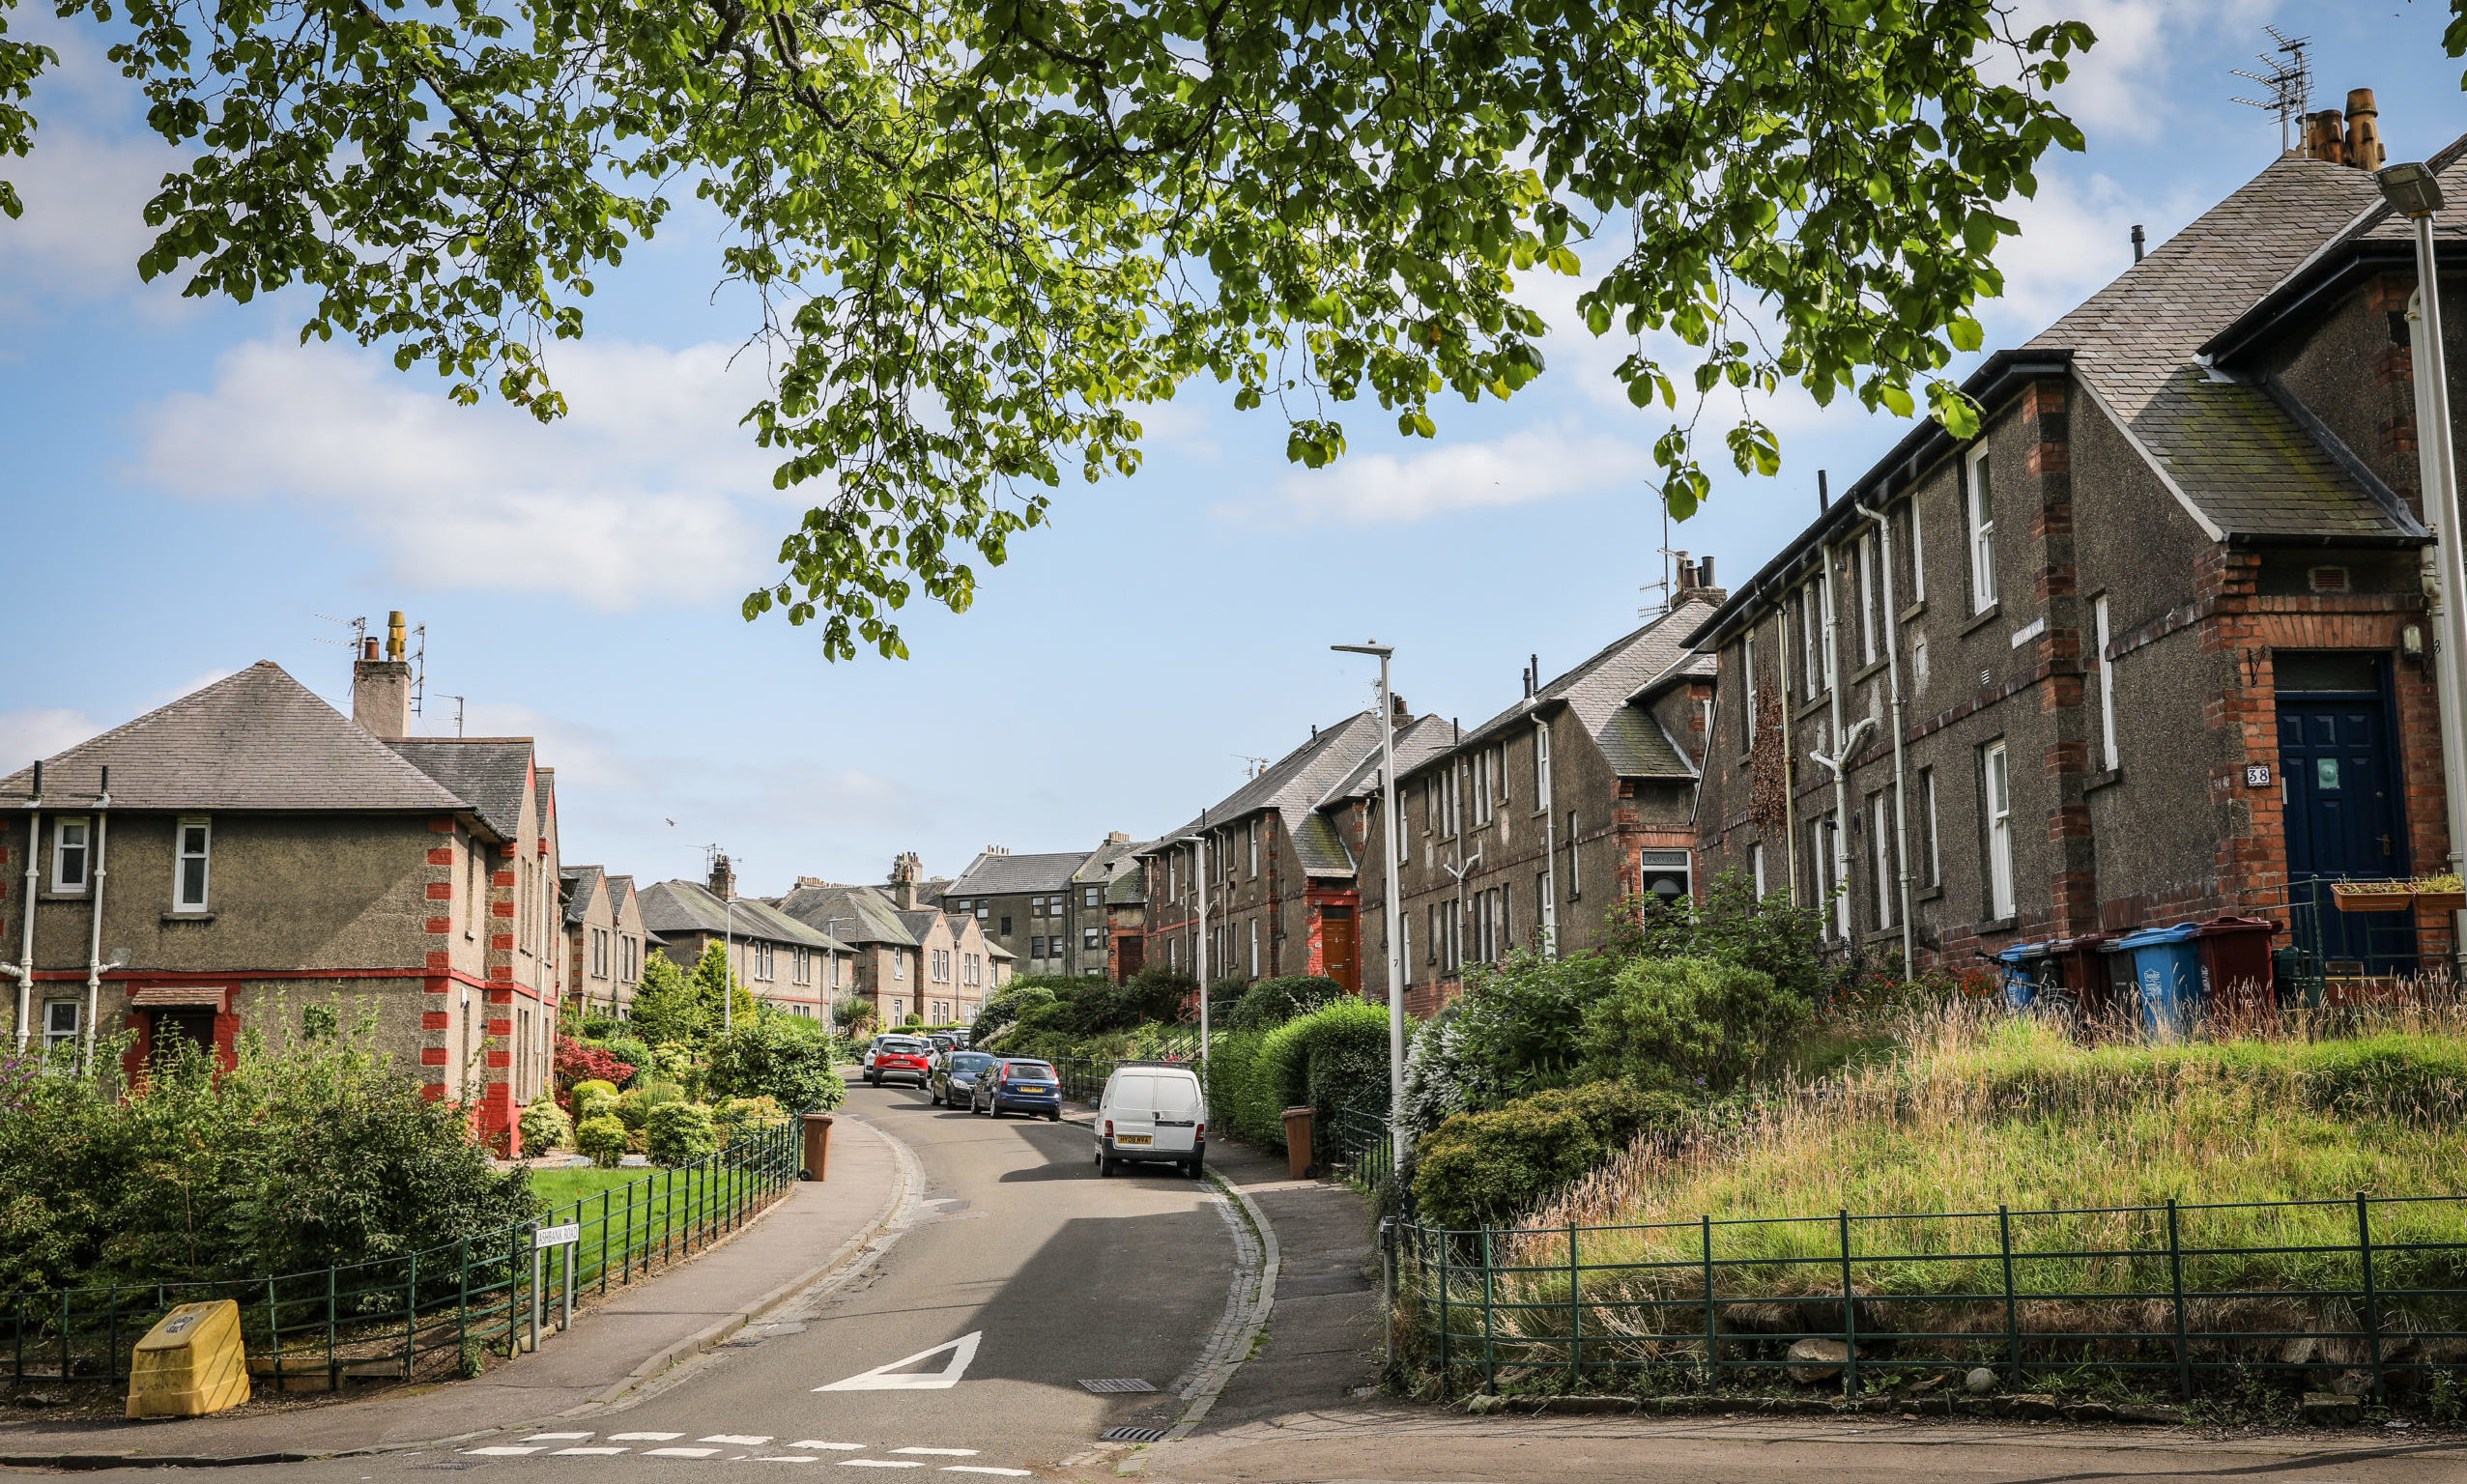 The Logie Avenue housing estate was opened in 1920 and was the first government housing scheme in Scotland.